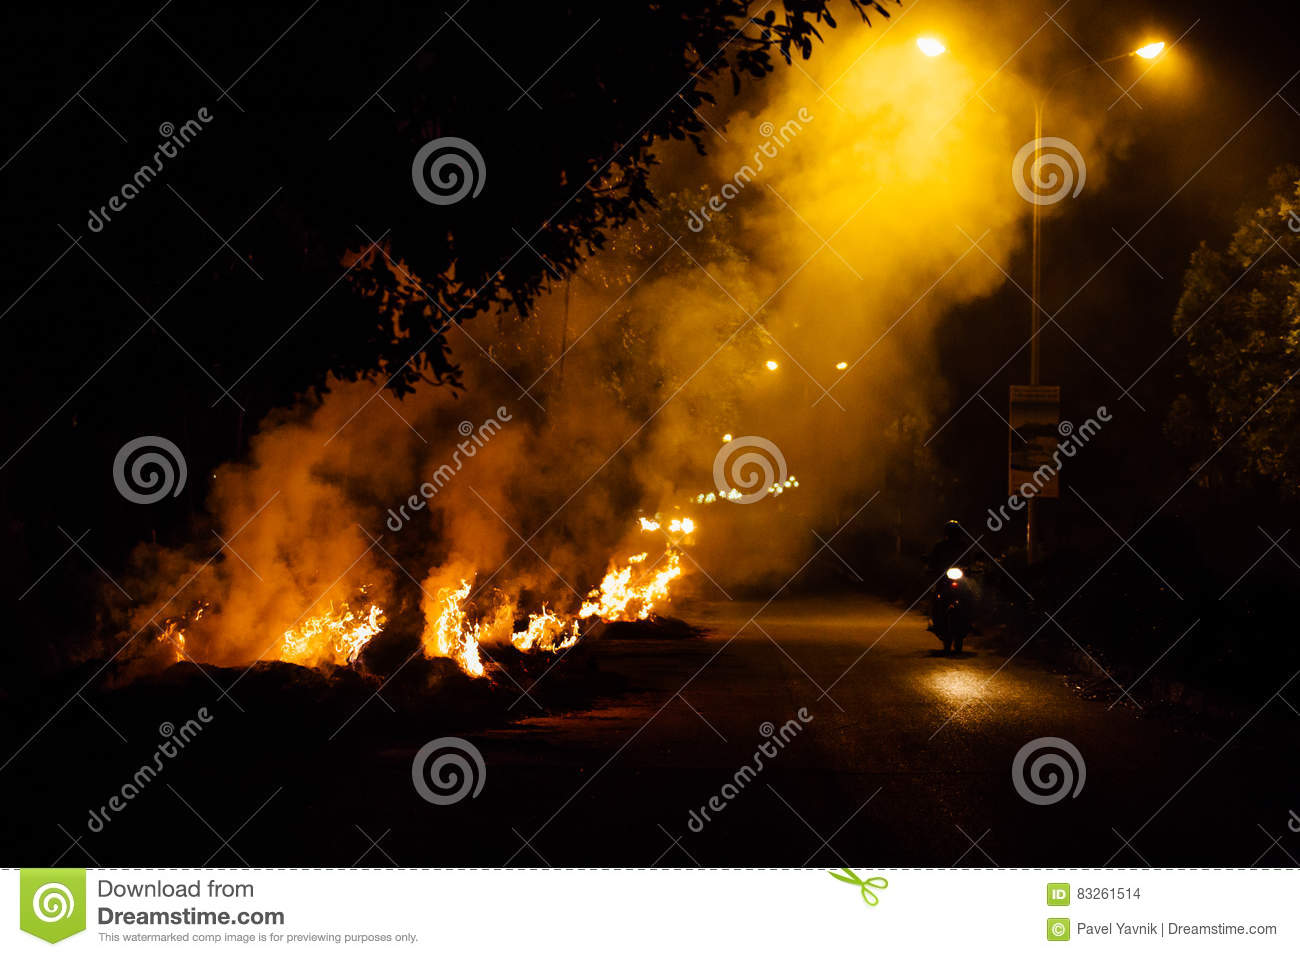 Motorcyclist goes up in smoke at night by burning garbage